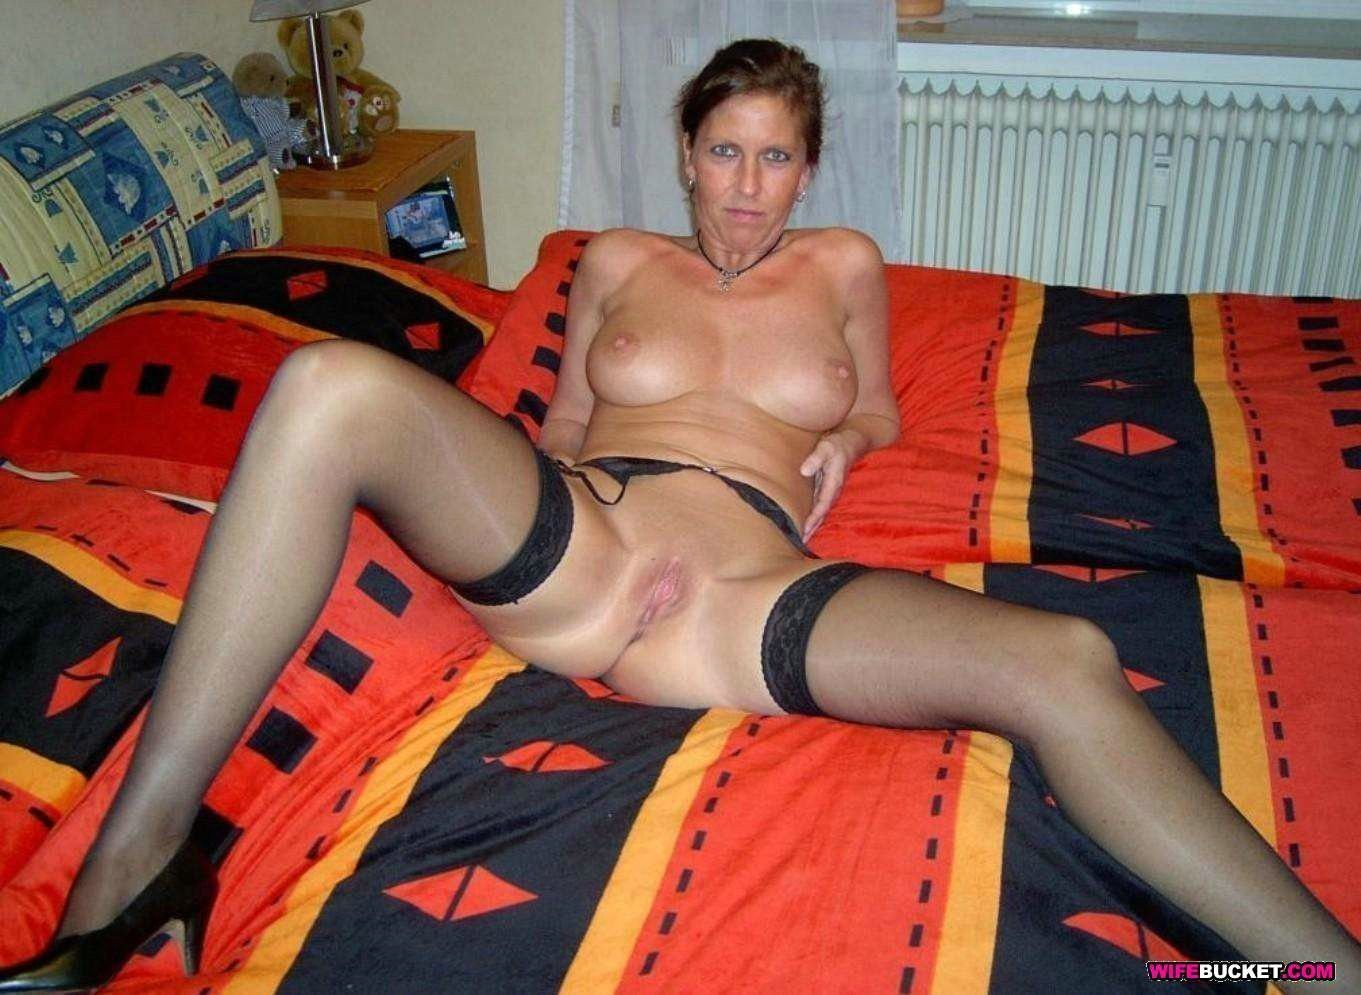 amateur mature posted submitted nude photos